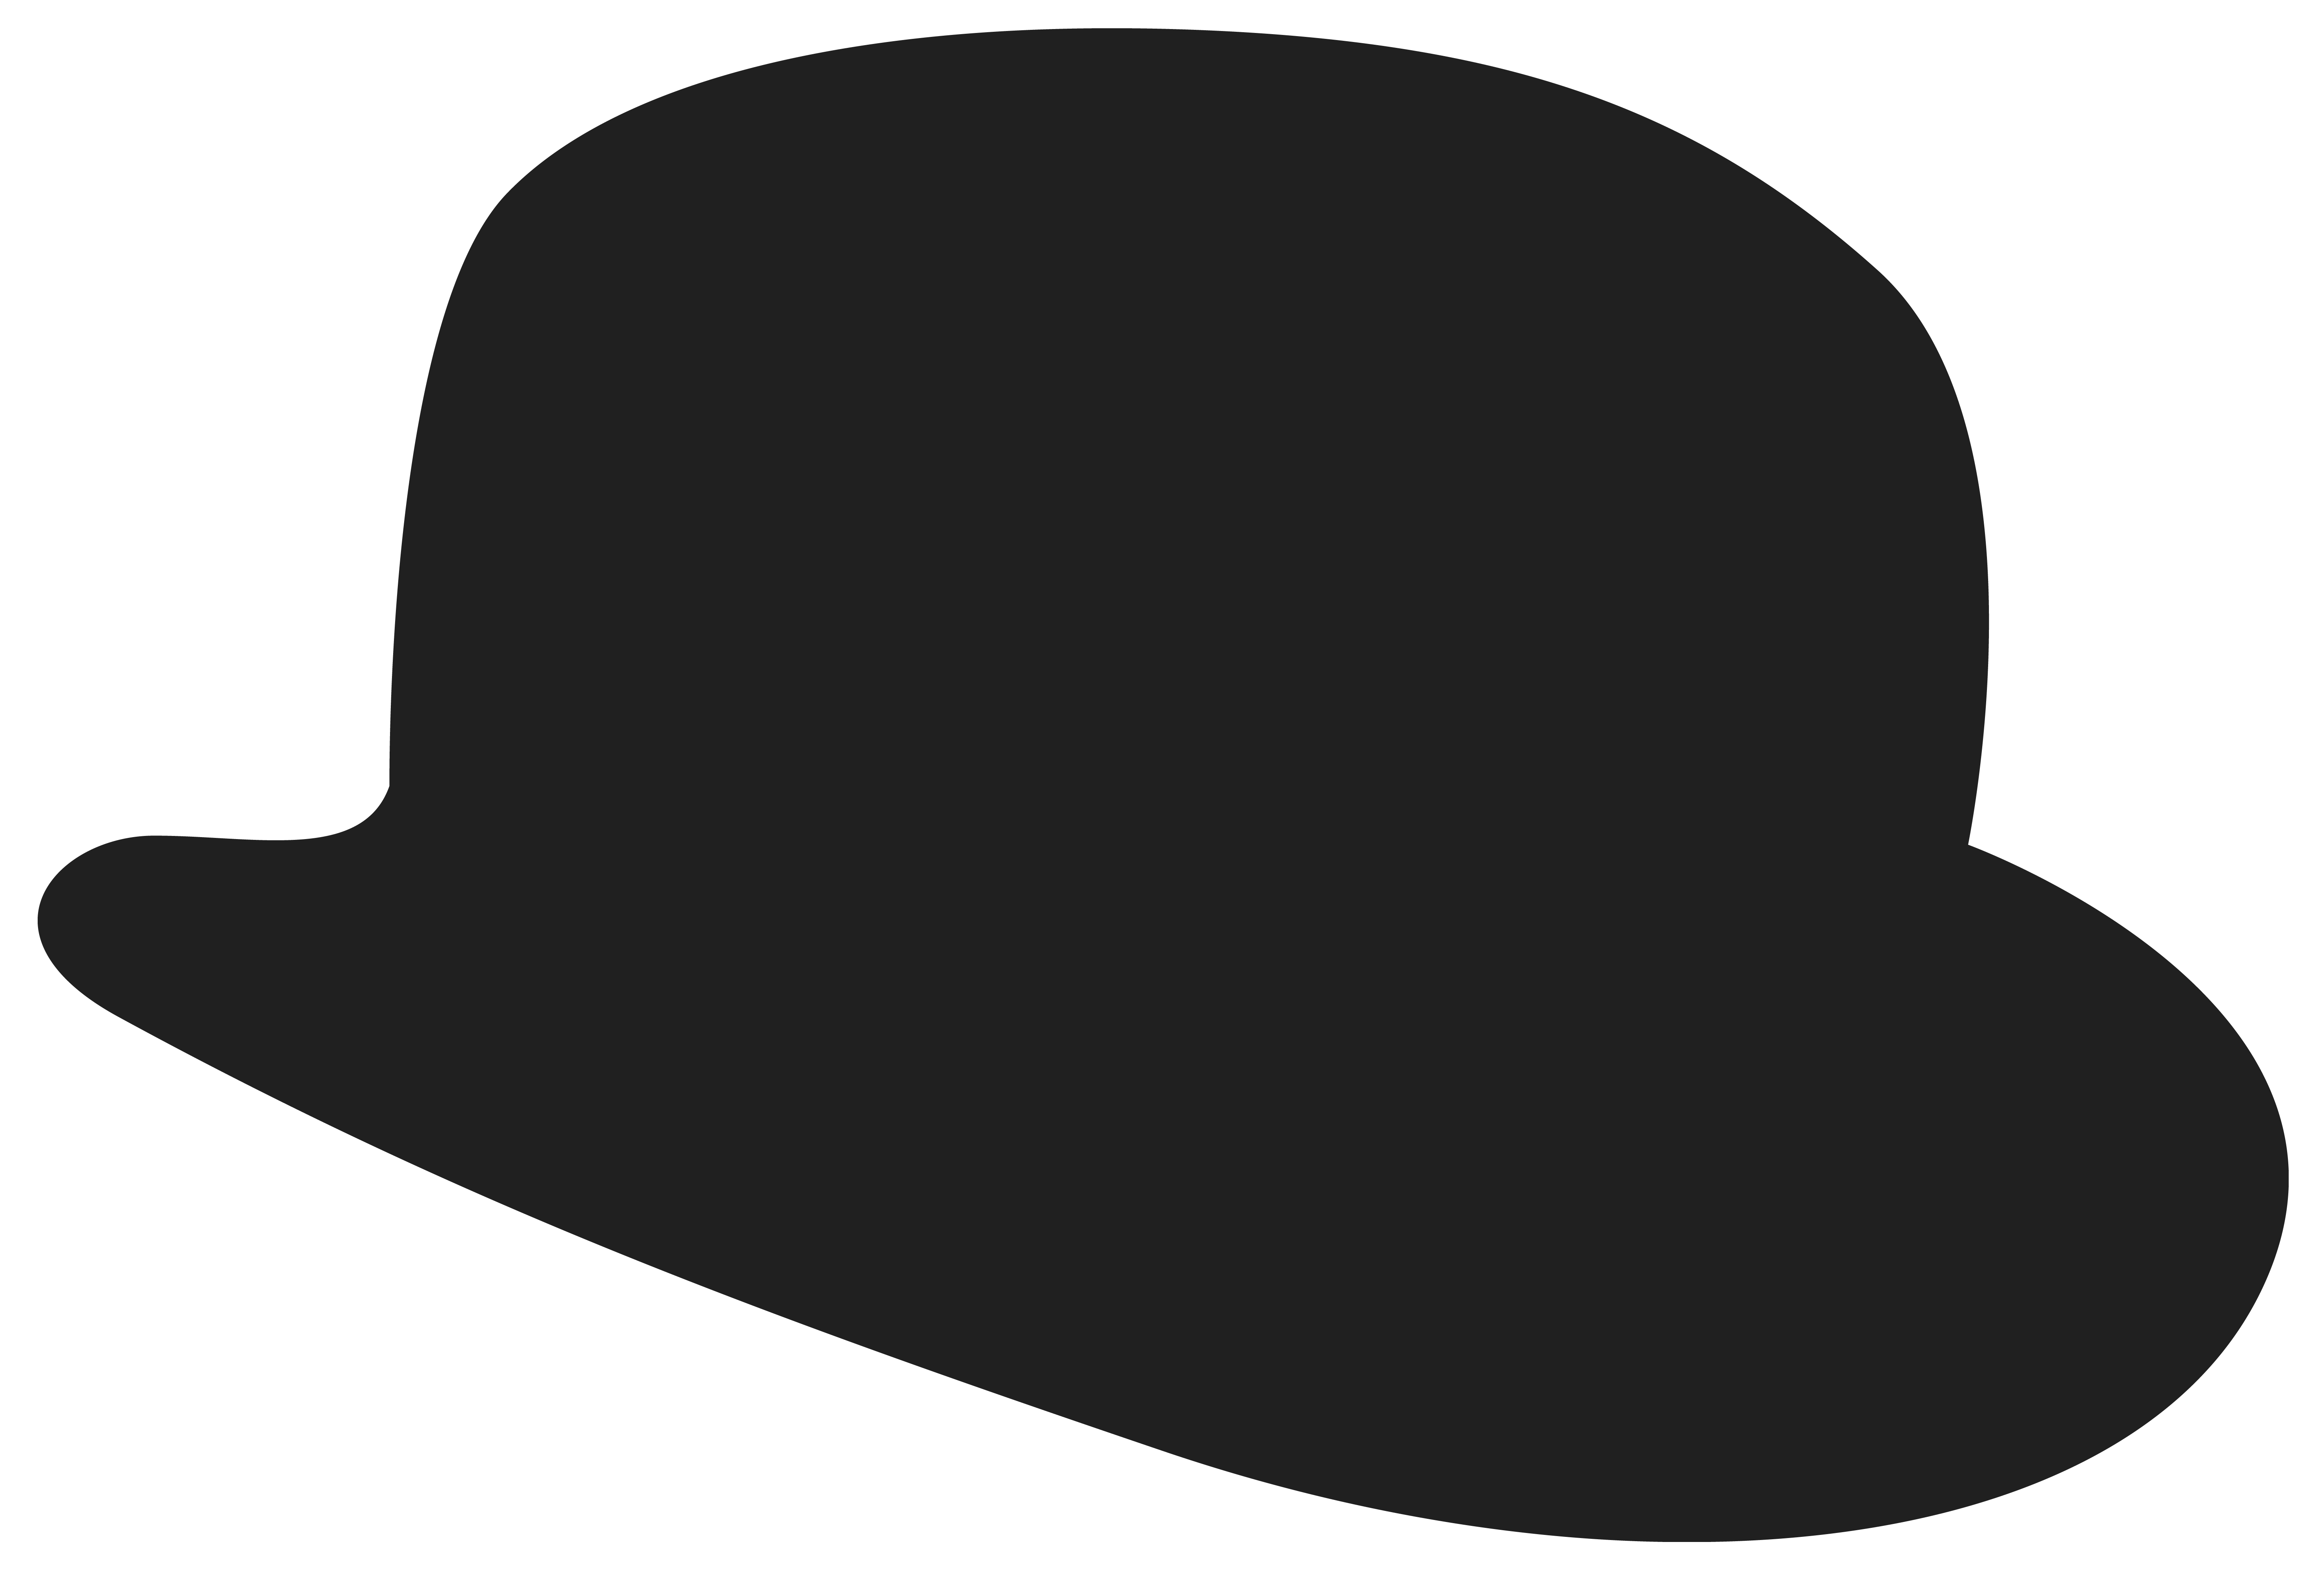 Movember Bowler Hat Clipart Image.